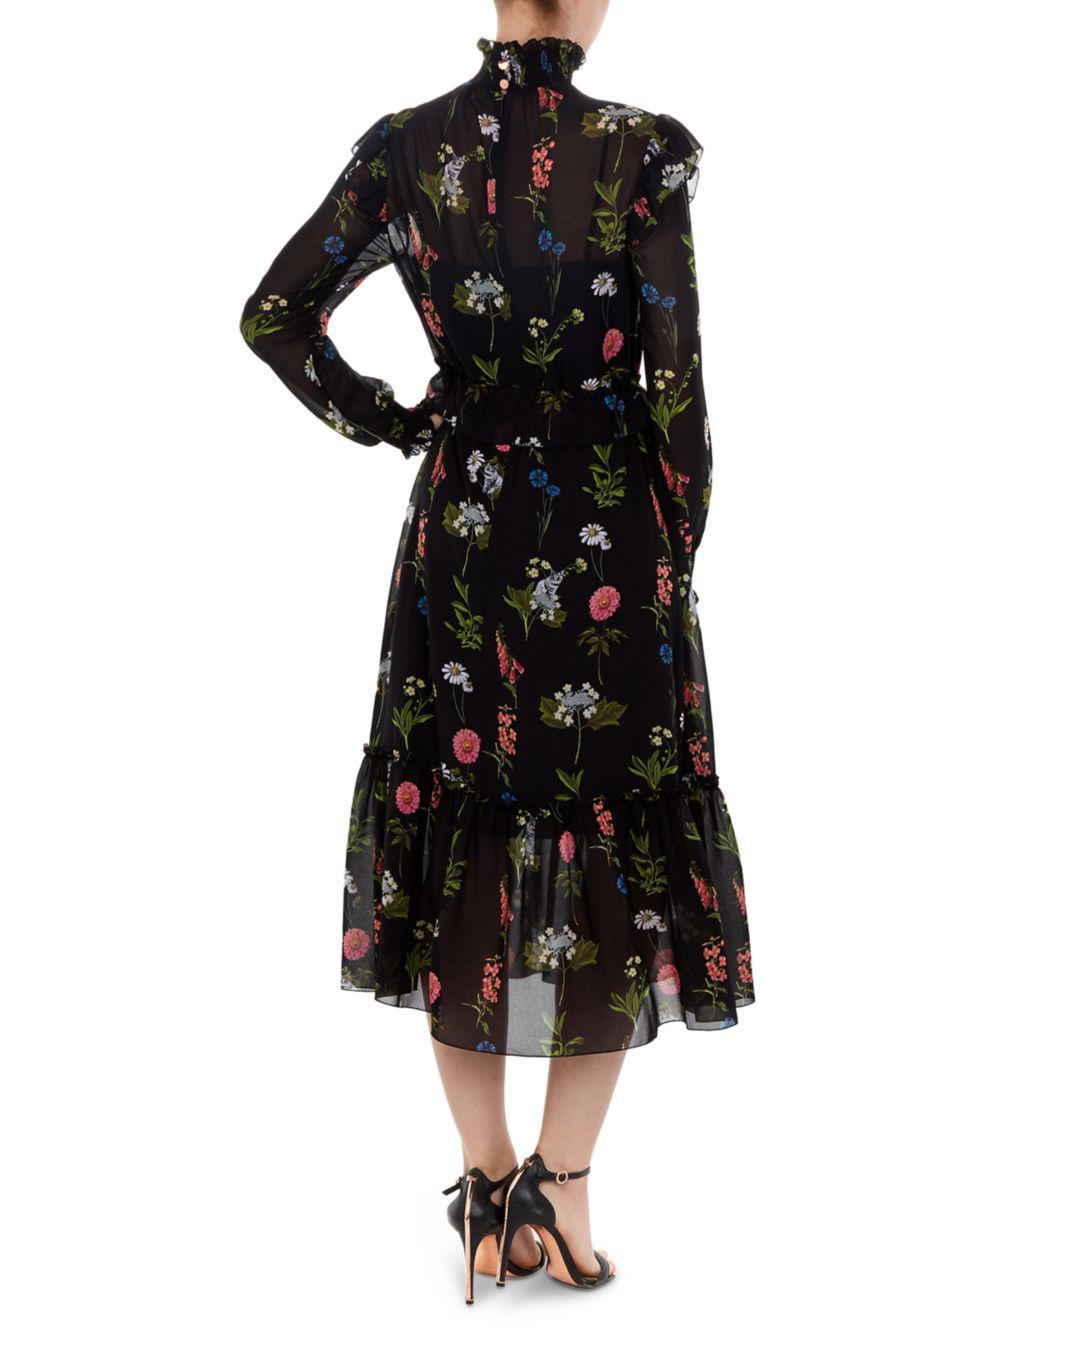 62851ce52c68f1 Lyst - Ted Baker Simarra Florence Midi Dress in Black